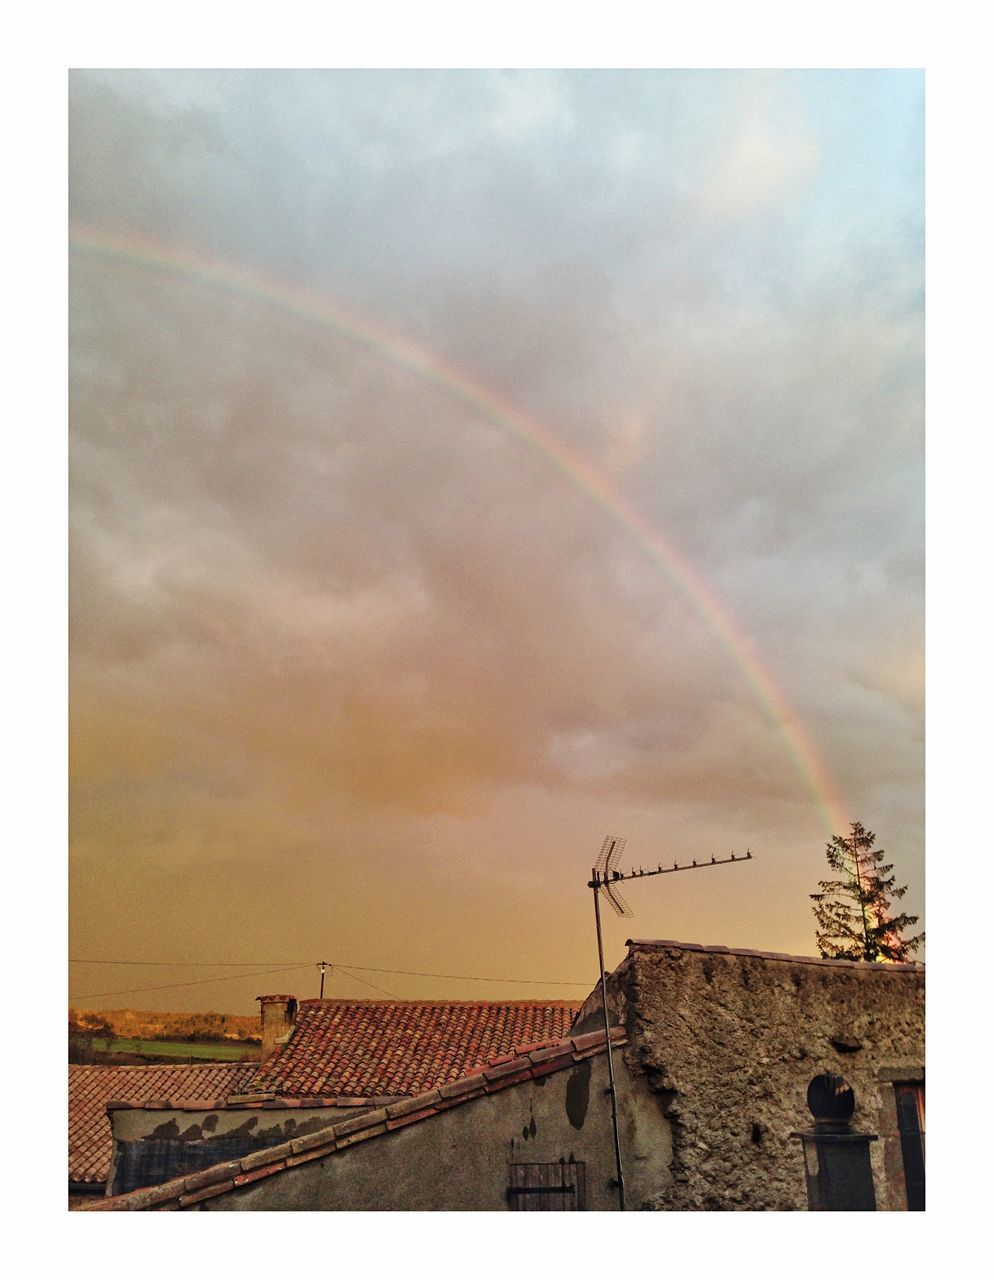 building exterior, rainbow, built structure, architecture, sky, cloud - sky, outdoors, double rainbow, day, scenics, no people, beauty in nature, nature, vapor trail, windmill